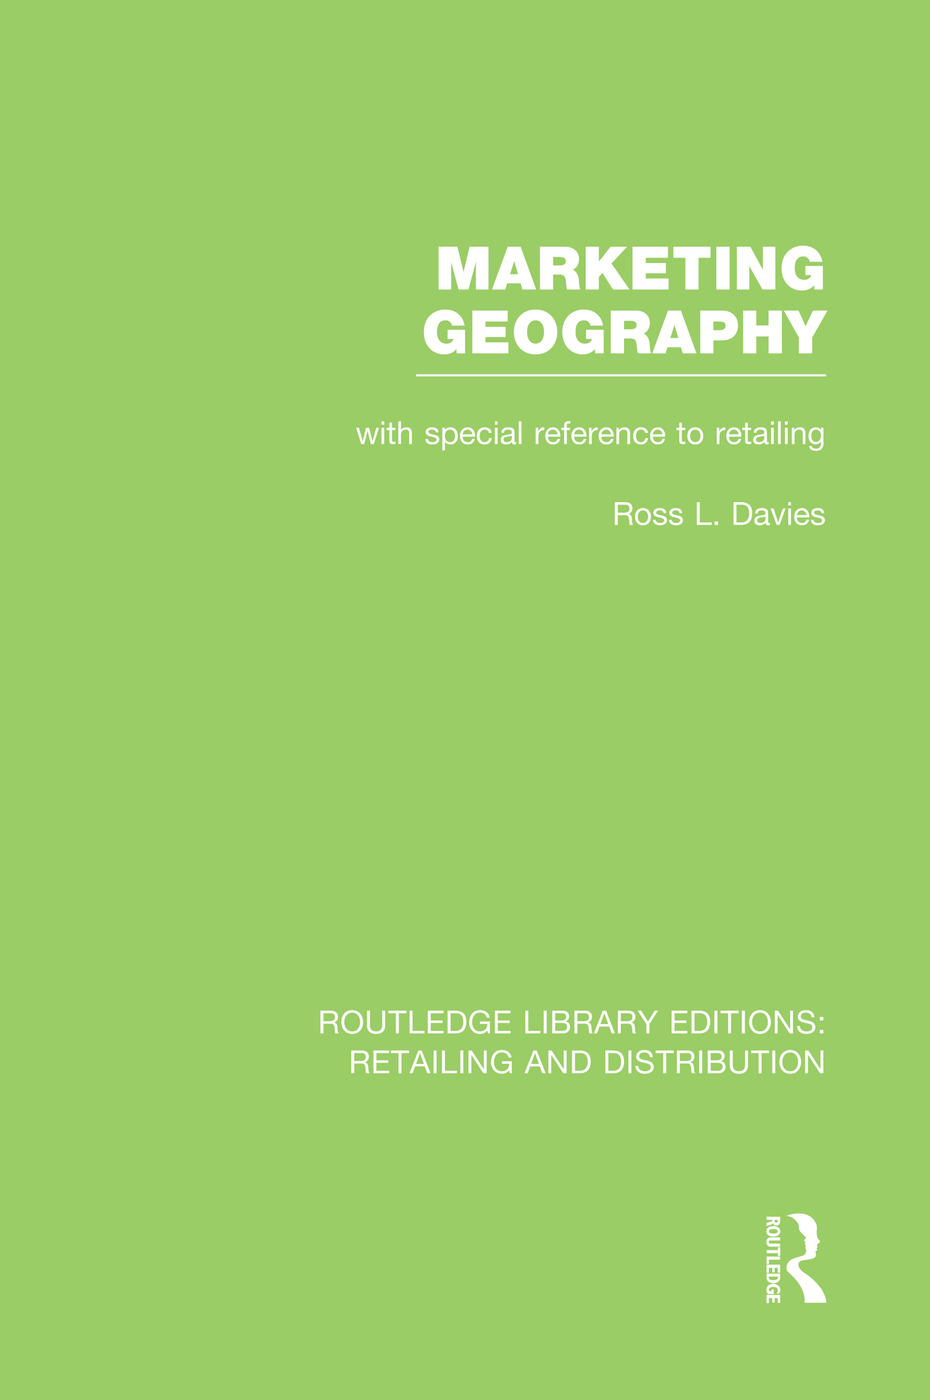 Marketing Geography (RLE Retailing and Distribution): With special reference to retailing book cover